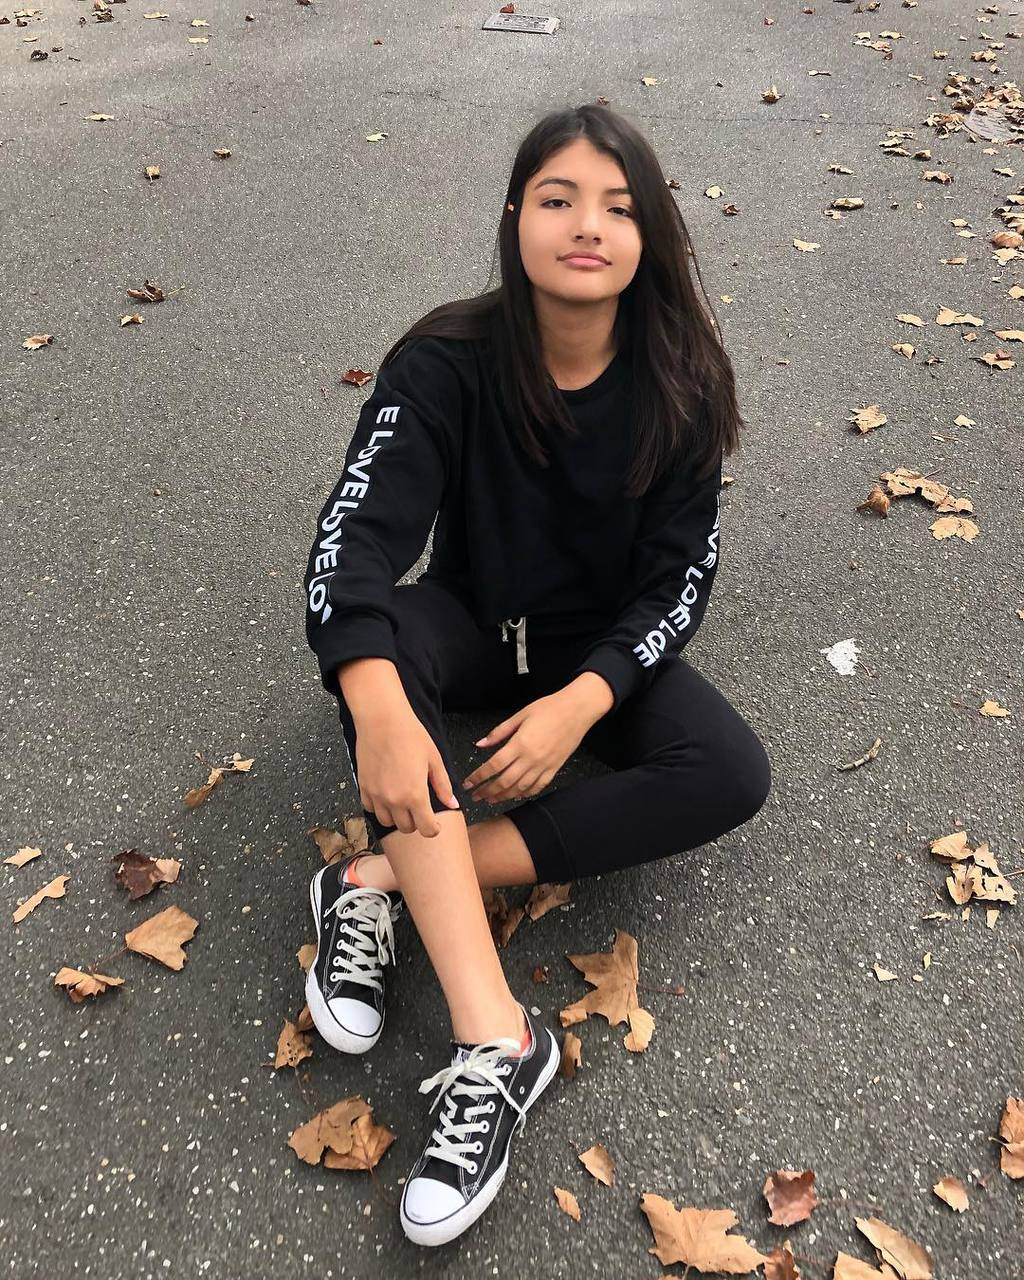 Nathaly wears a black matching sweatsuit with white words on the sleeves and matching black low-top Converse sneakers.